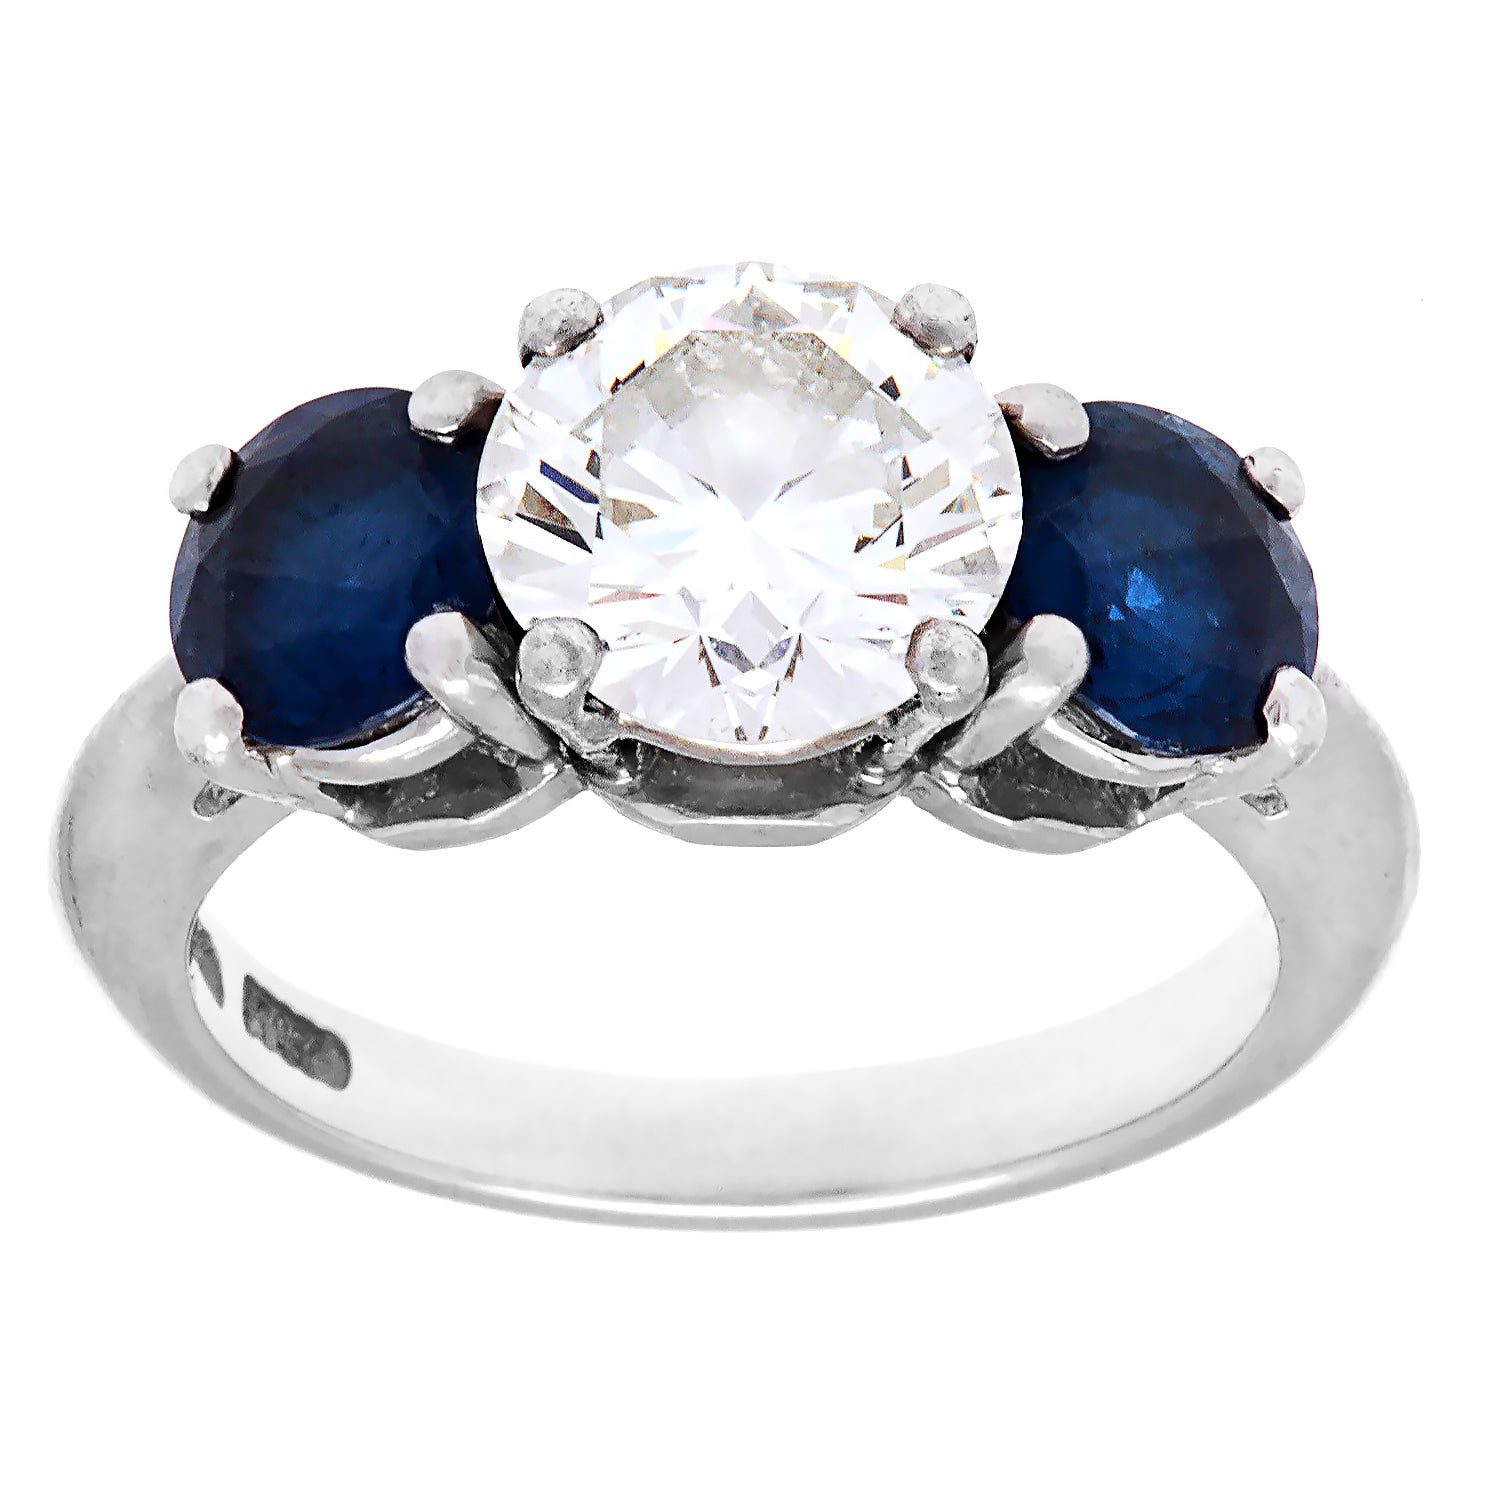 ring pics cut rings diamond jewellry between please inspirational website sapphire s weddingbee cushion choice carat